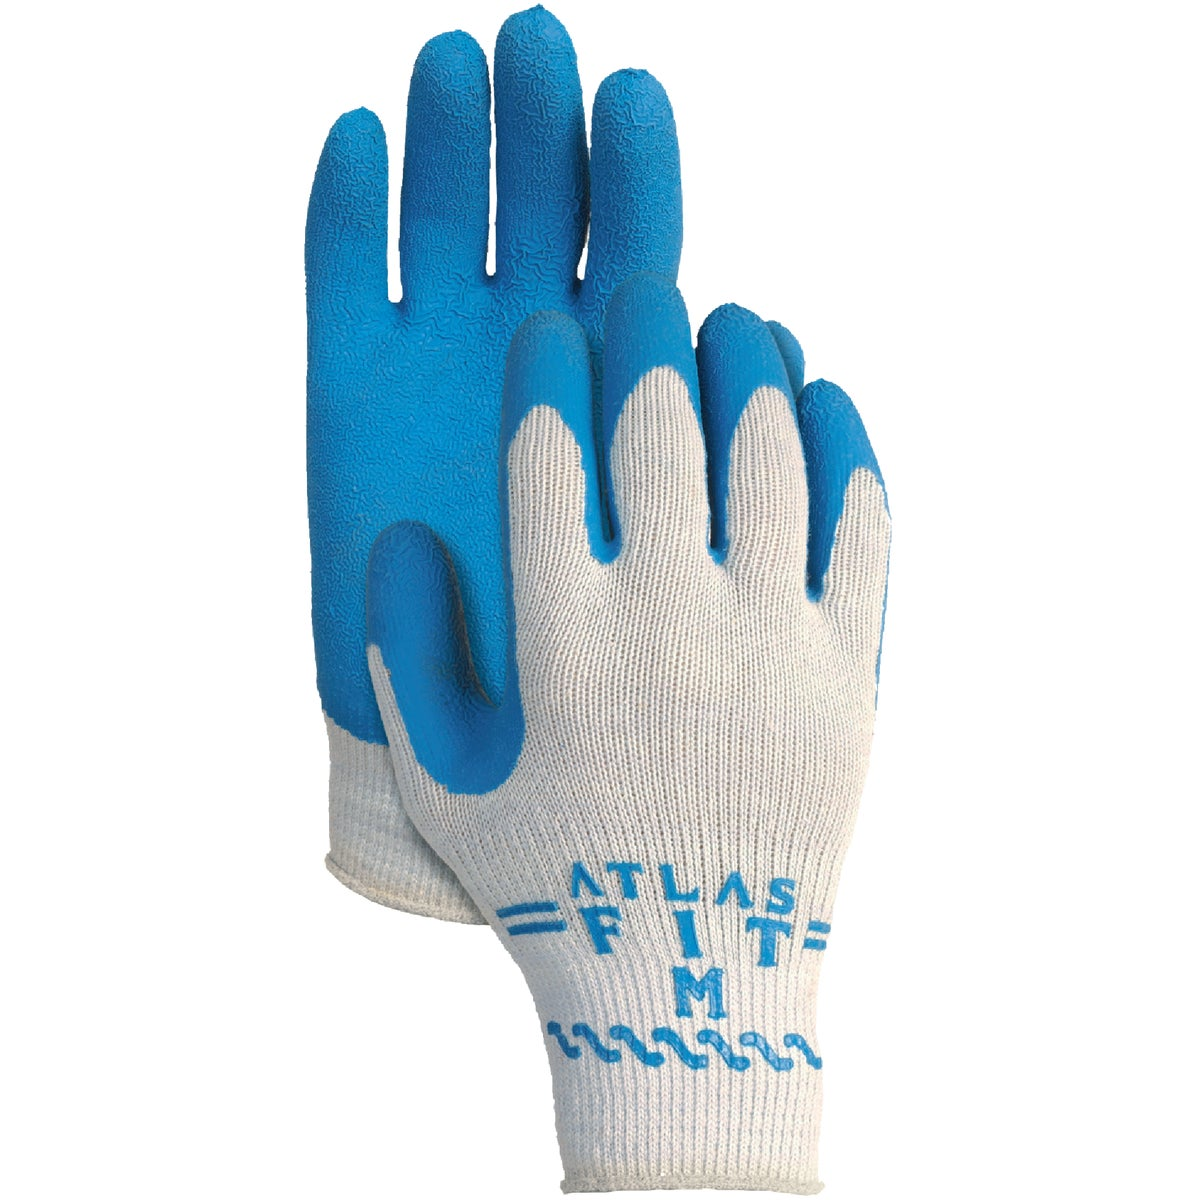 SML PALM DIPPED GLOVE